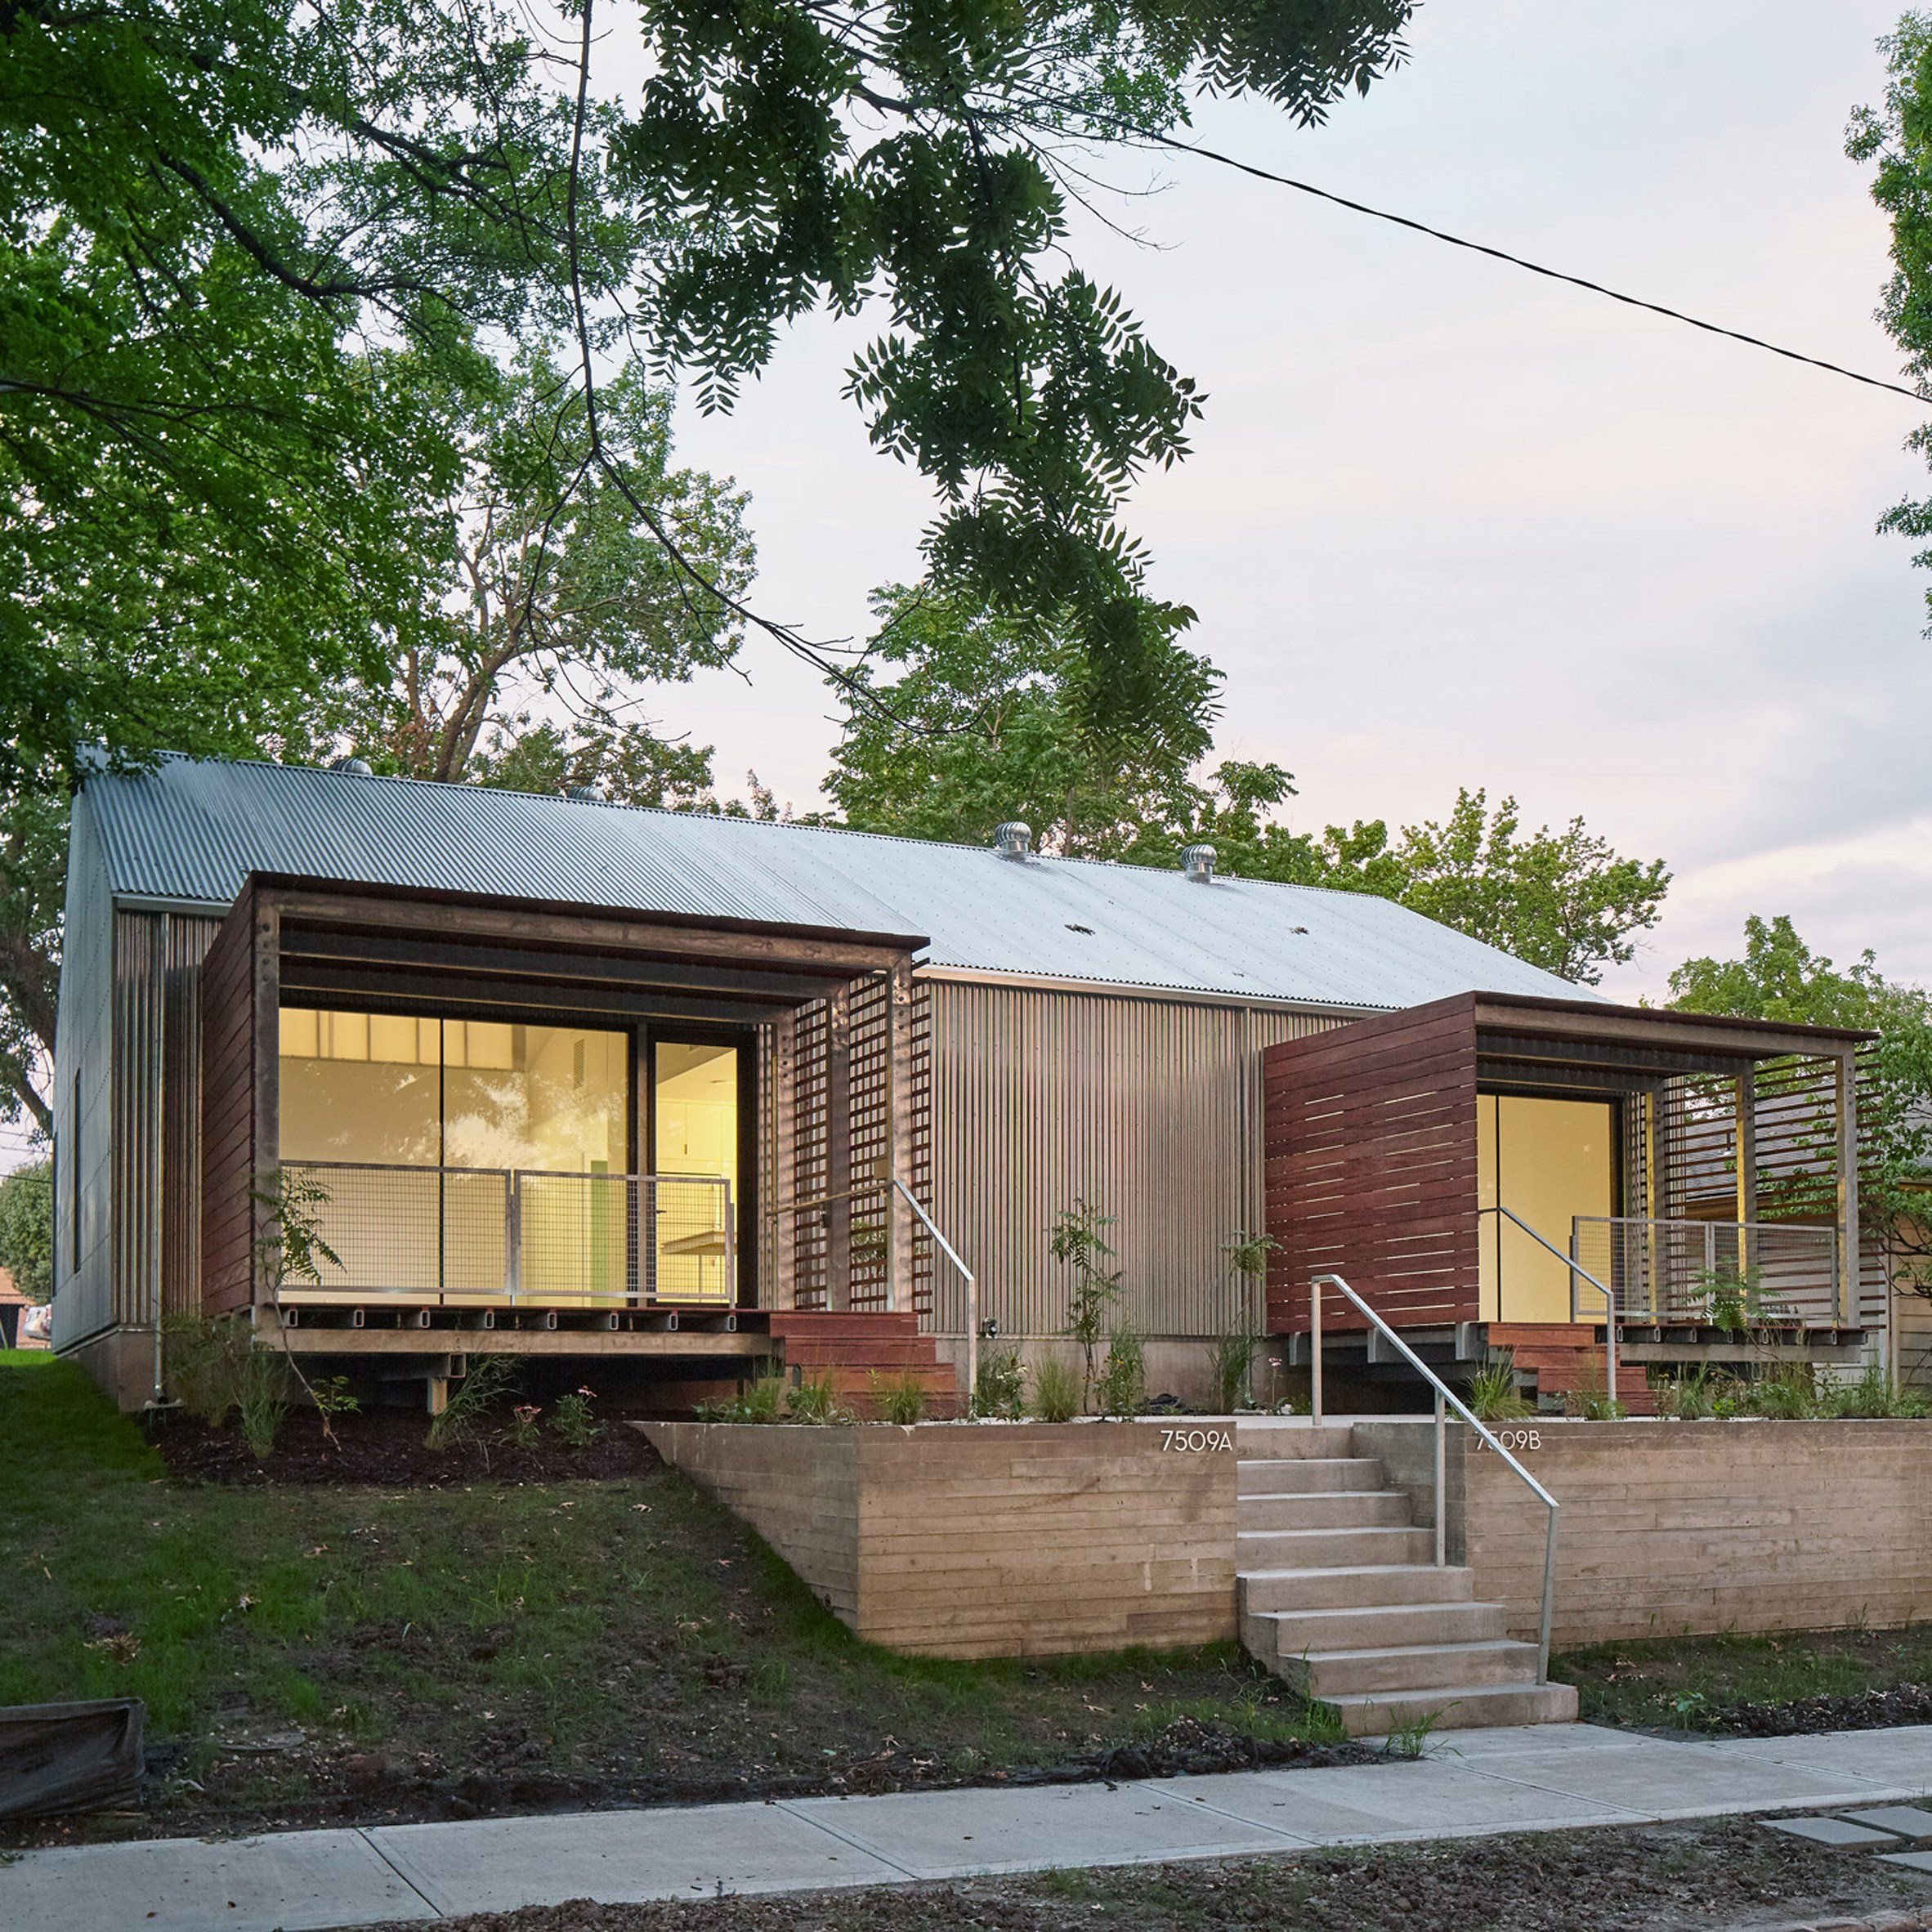 Kansas City Students Wrap Affordable Home In Corrugated